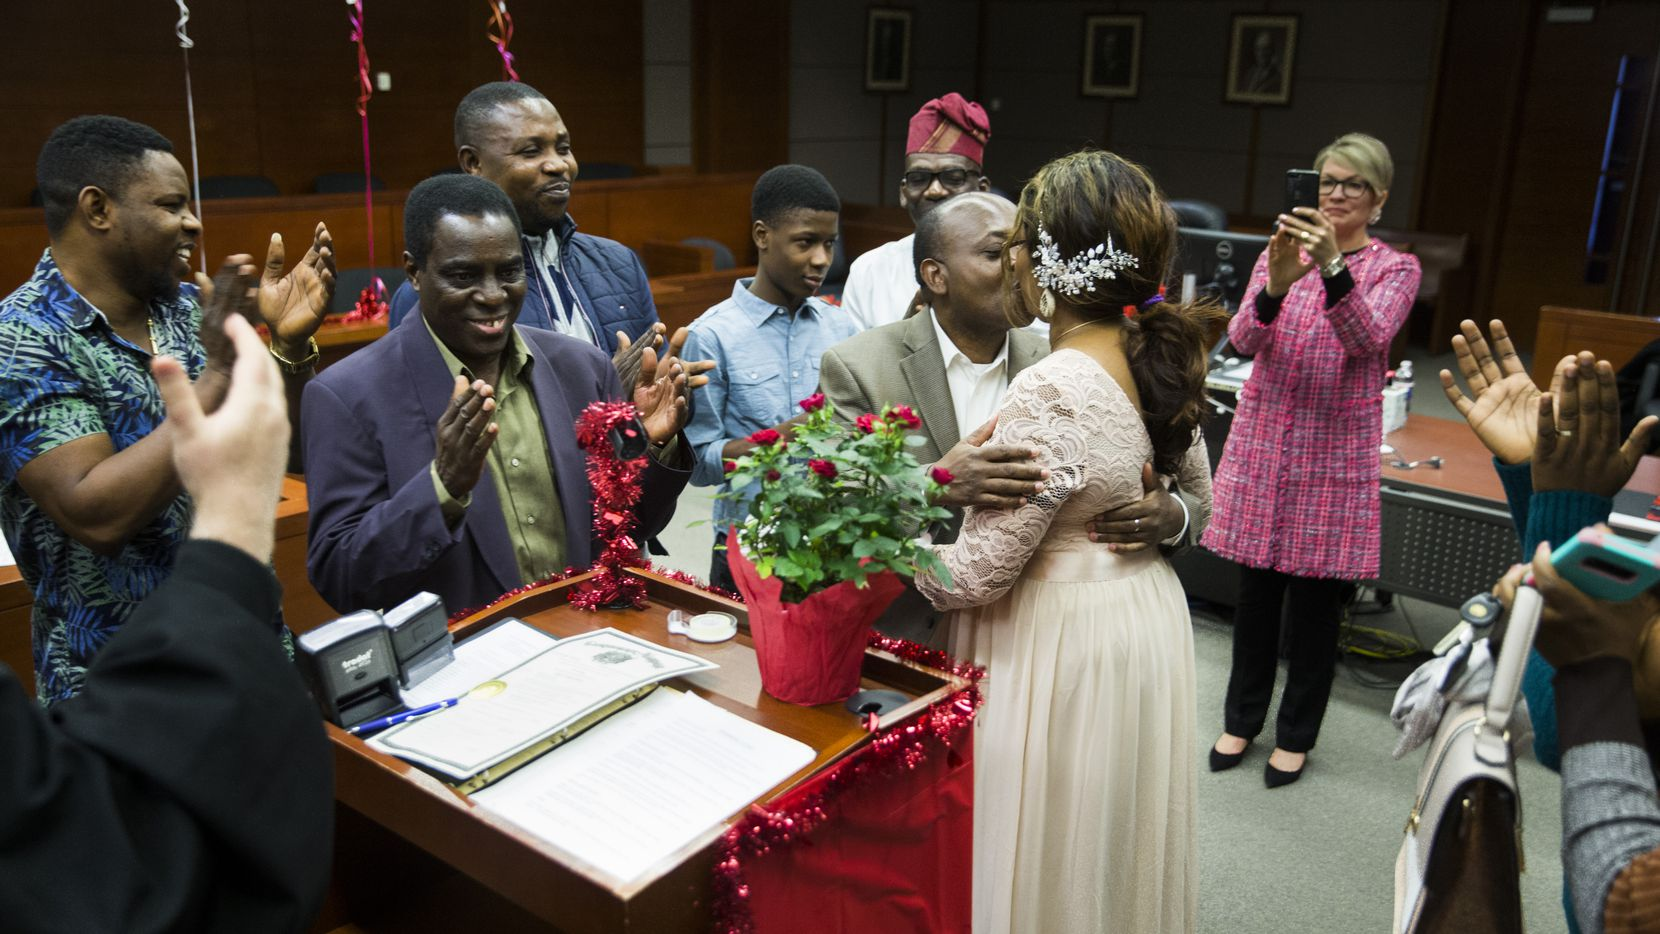 Bin Mazola and Titilope Oluyemi kissed as their families applauded after they were married by Judge Martin Hoffman on Feb. 14, 2020, at the George L. Allen Sr. Courts Building in Dallas. Hoffman performed the ceremonies for free on Valentine's Day.